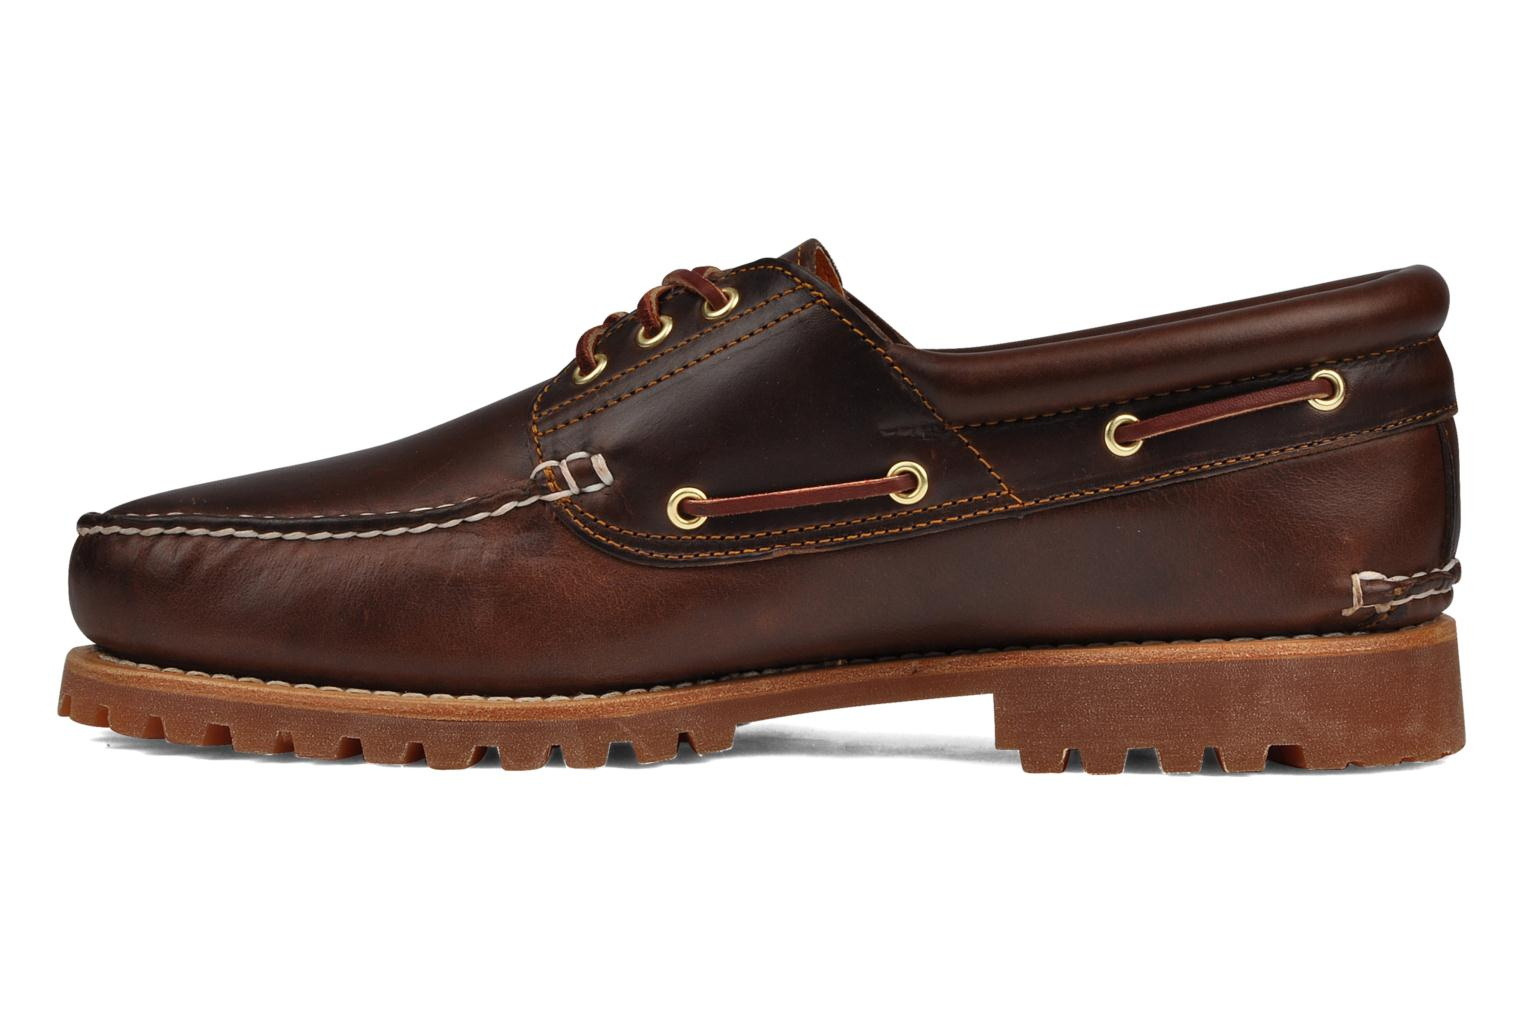 Authentics FTM 3 Eye Classic Lug Brown pull up